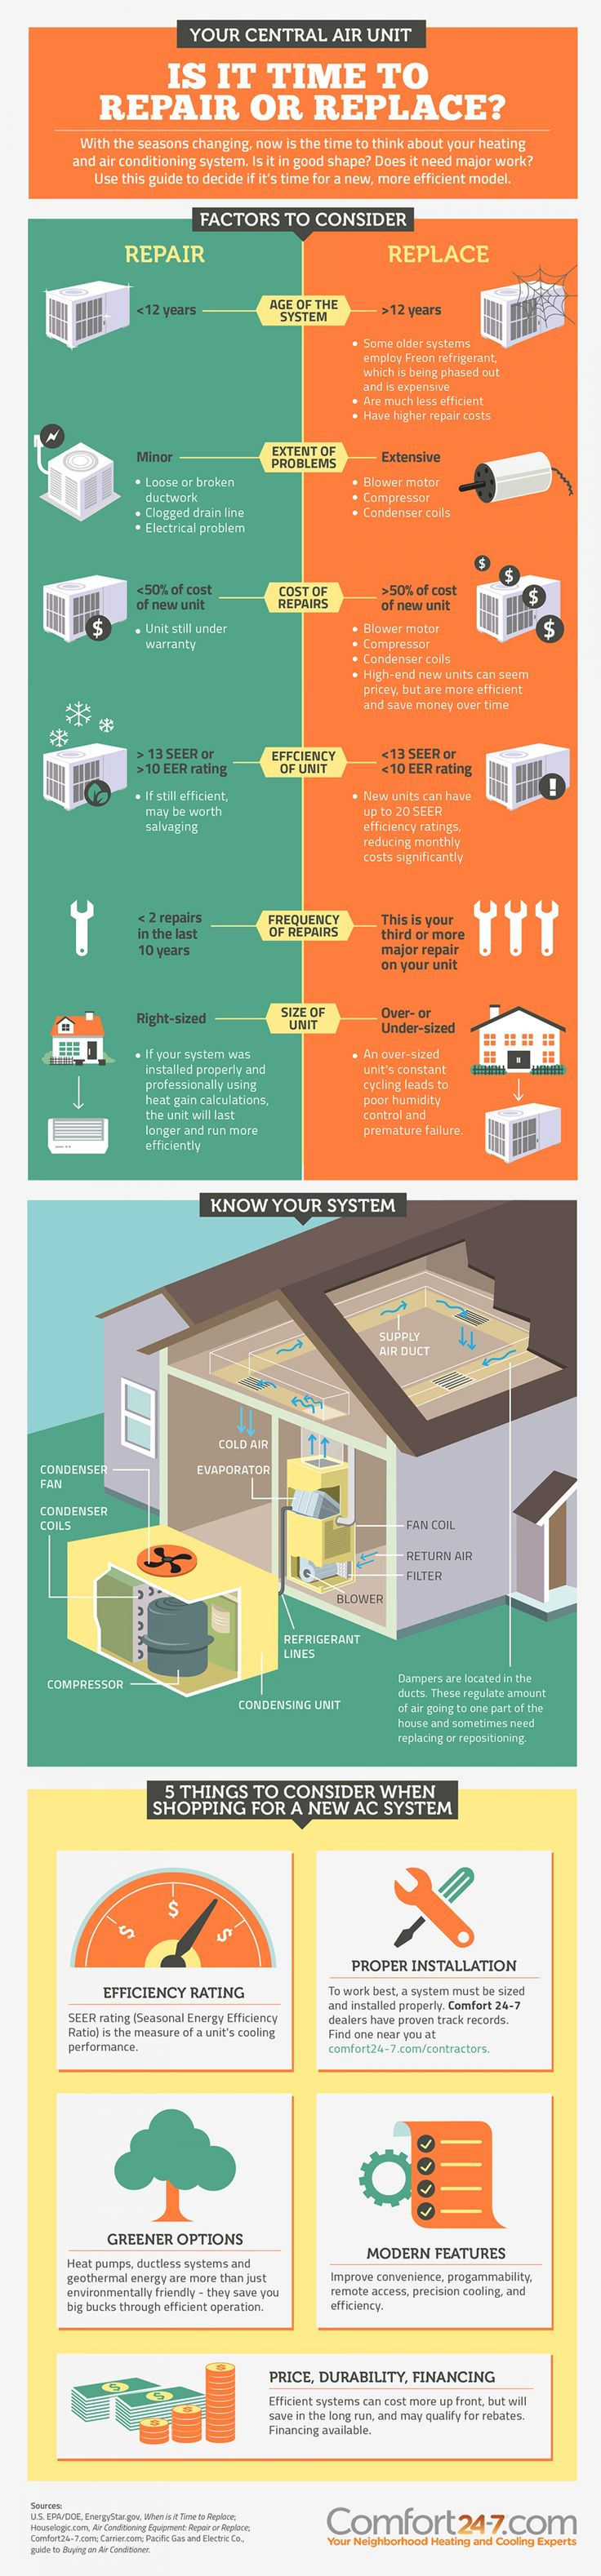 New air conditioning unit cost - Is It Time To Repair Or Replace Air Conditioning System Infographic